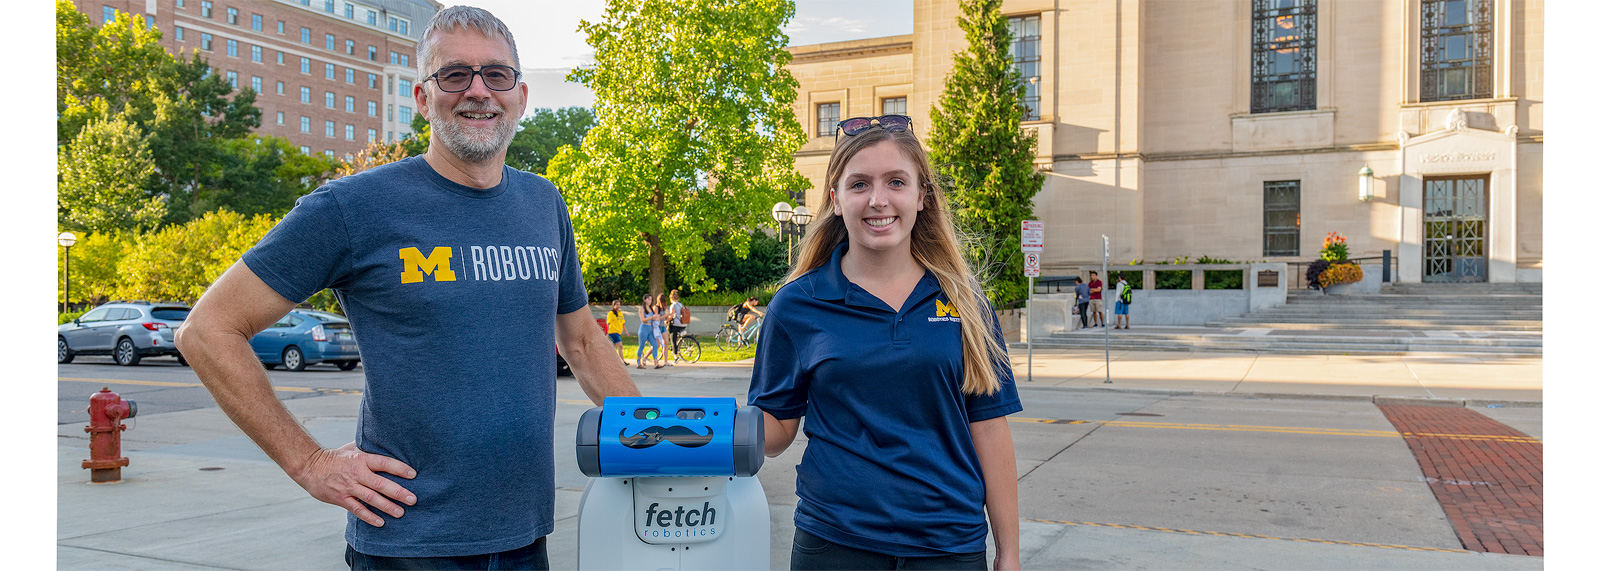 "Jessy Grizzle and Liz Olson of U-M robotics with the robot ""Fetch"" <span class='image-credits'>Doug Coombe</span>"